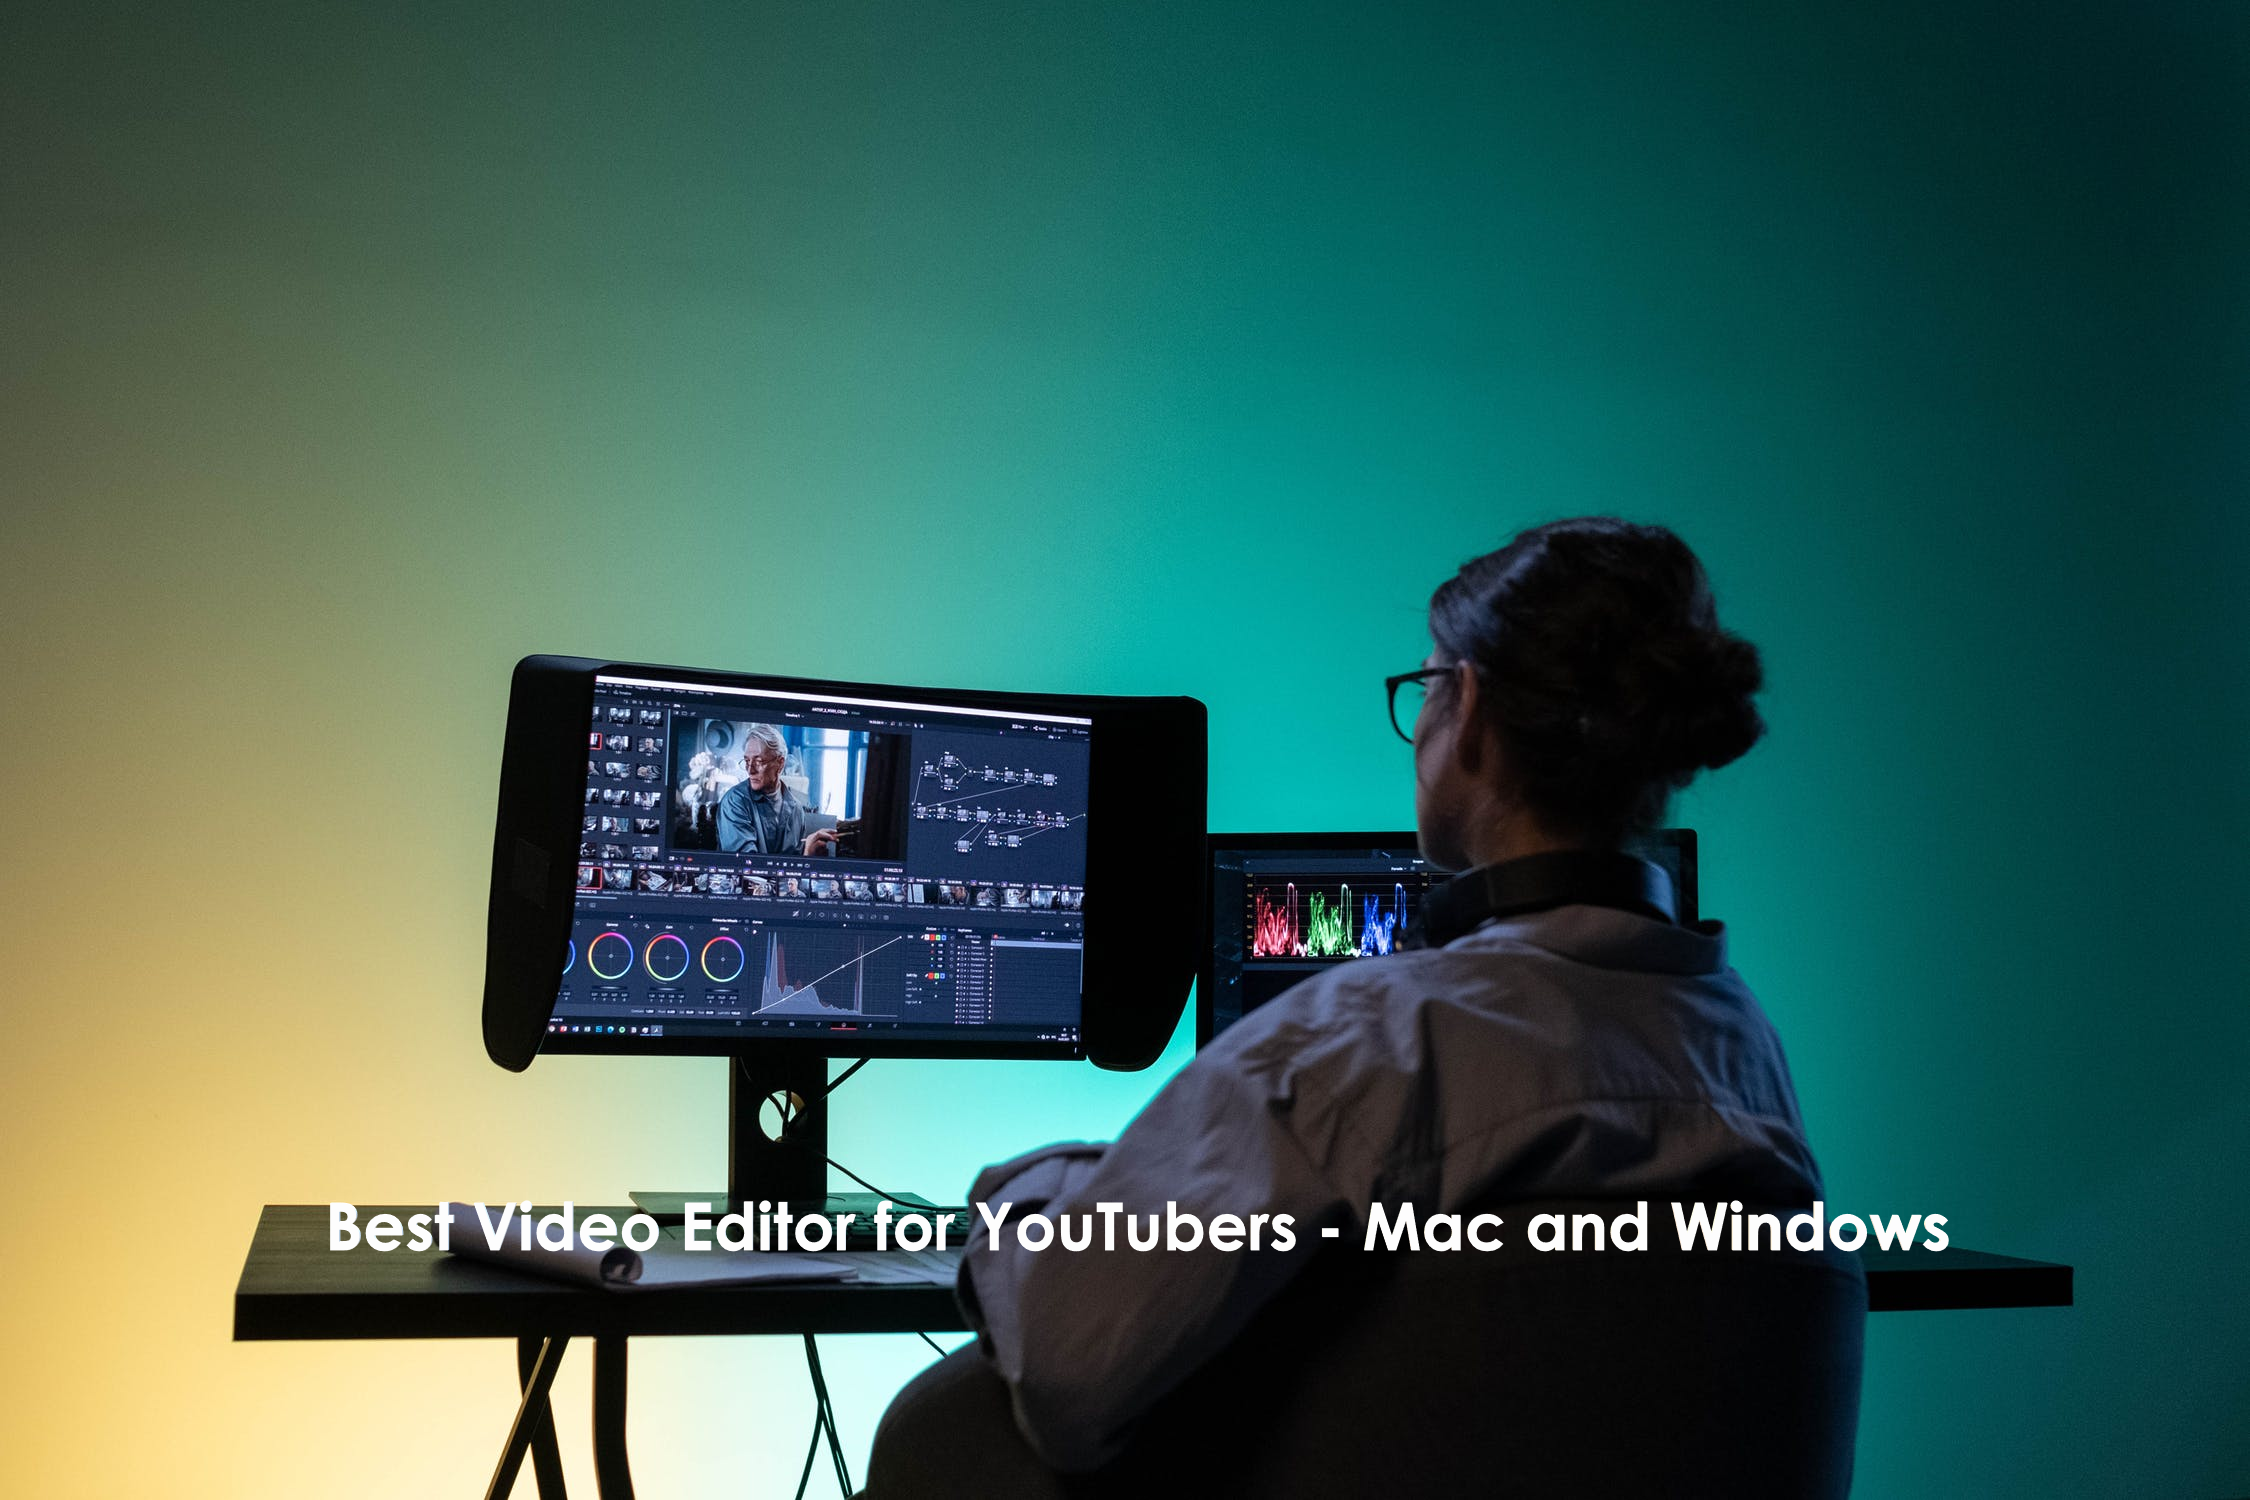 10 Best Video Editing Software for YouTube [Win/Mac, Free/Paid]